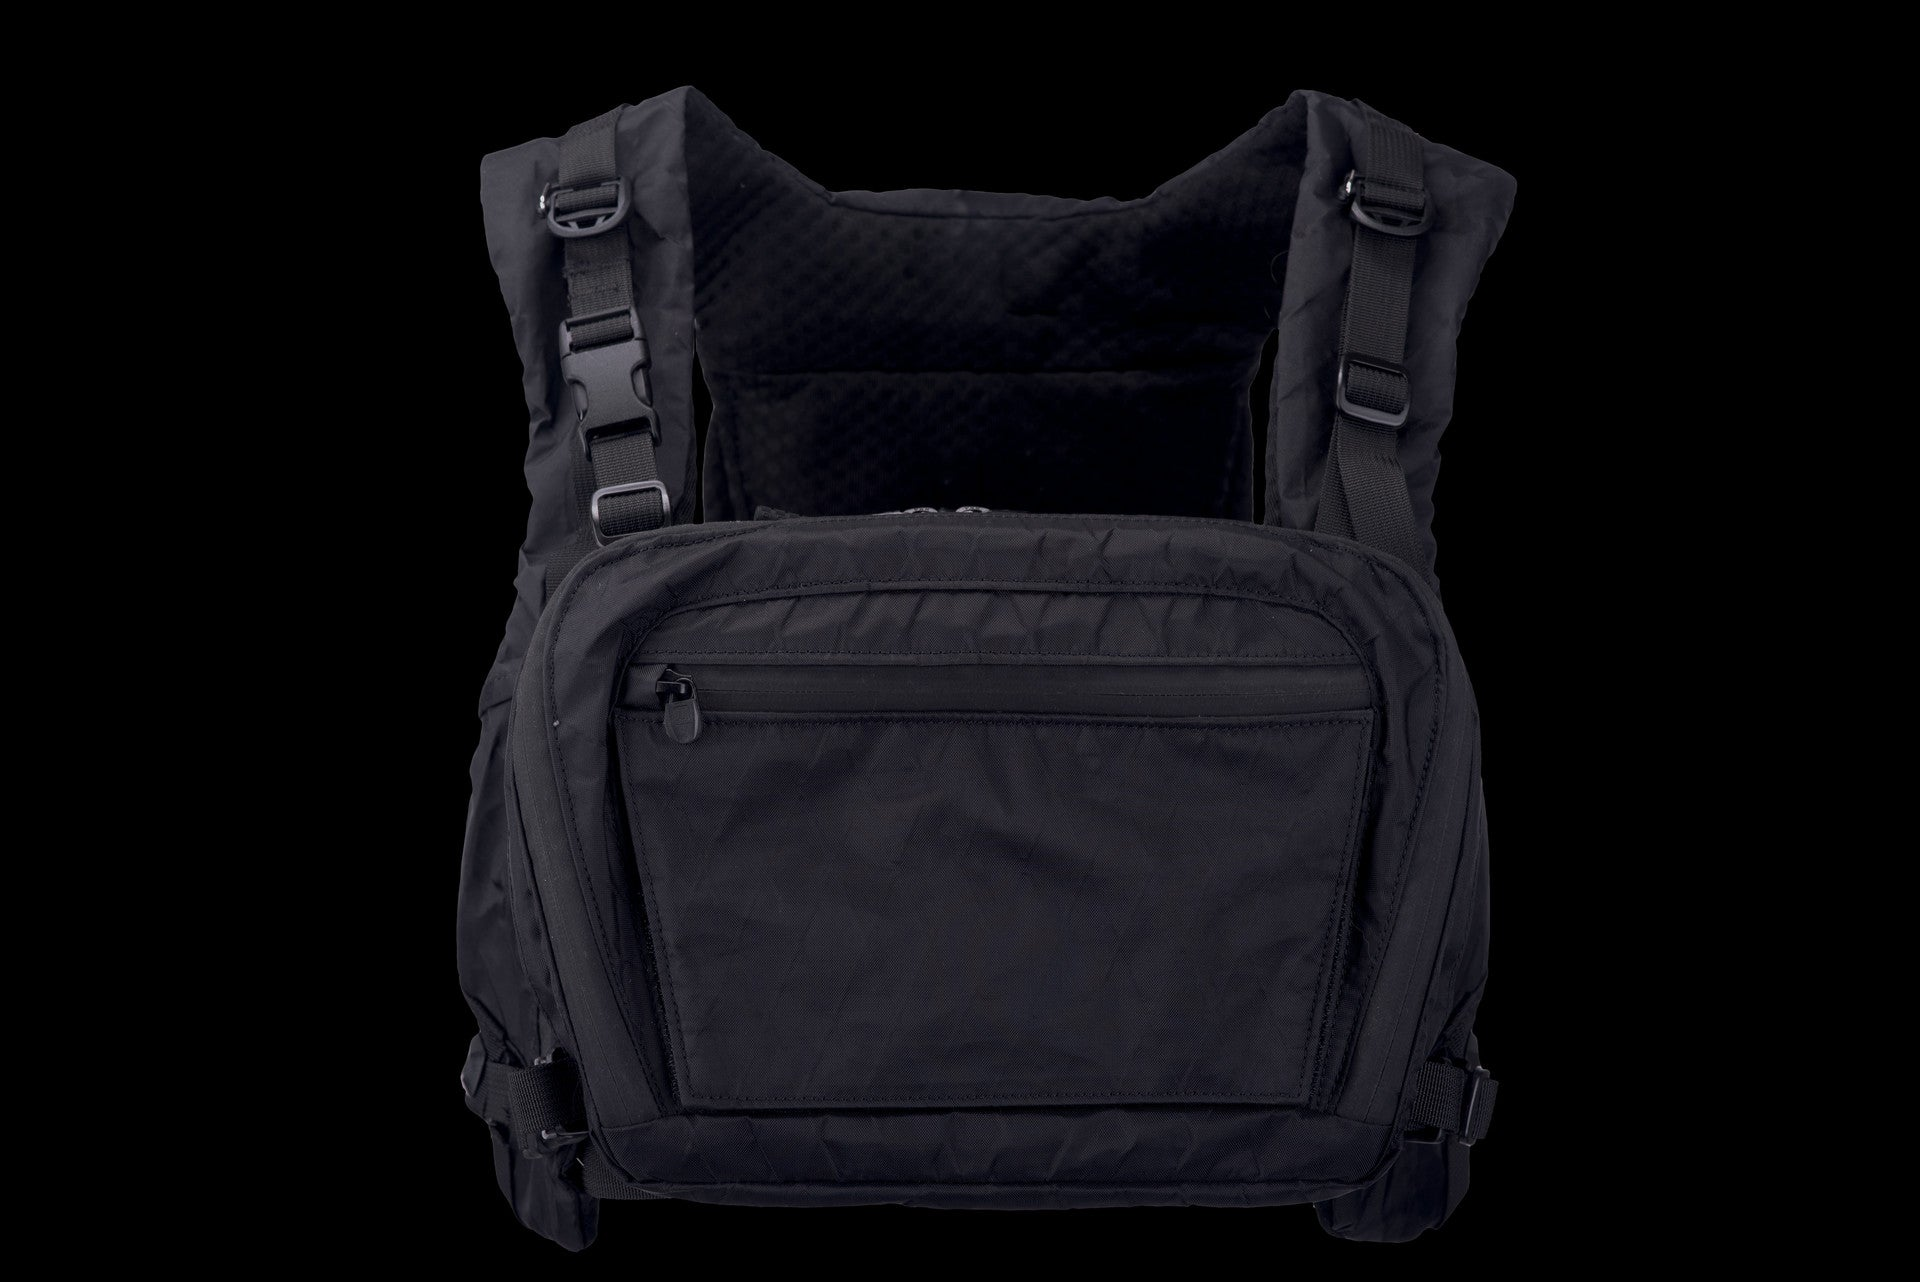 Spectre Chest Rig